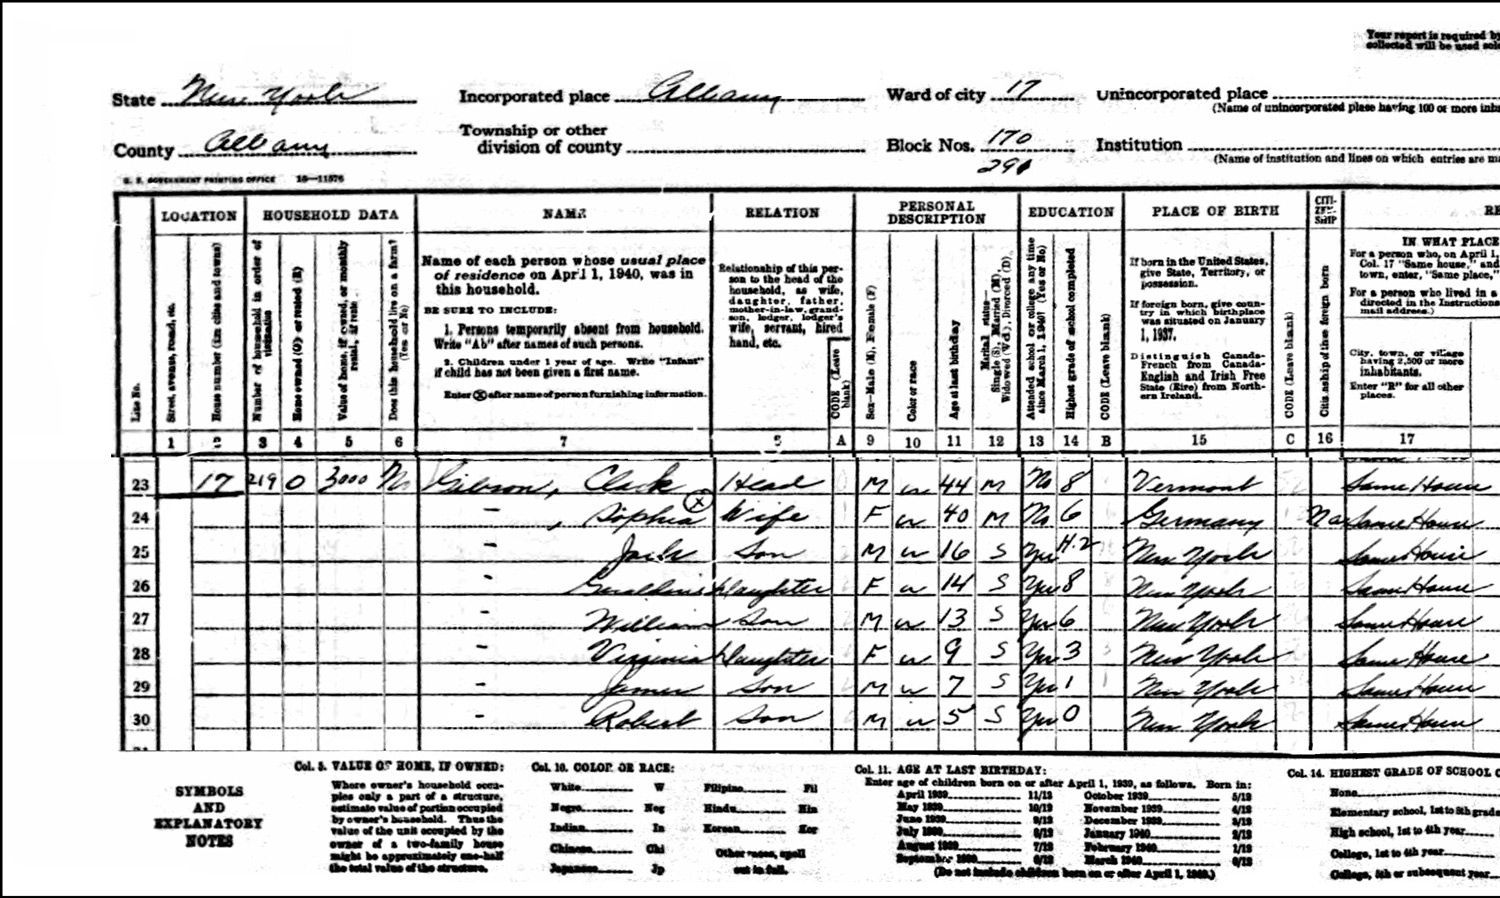 1940 US Federal Census Record for the Clark Gibson Family